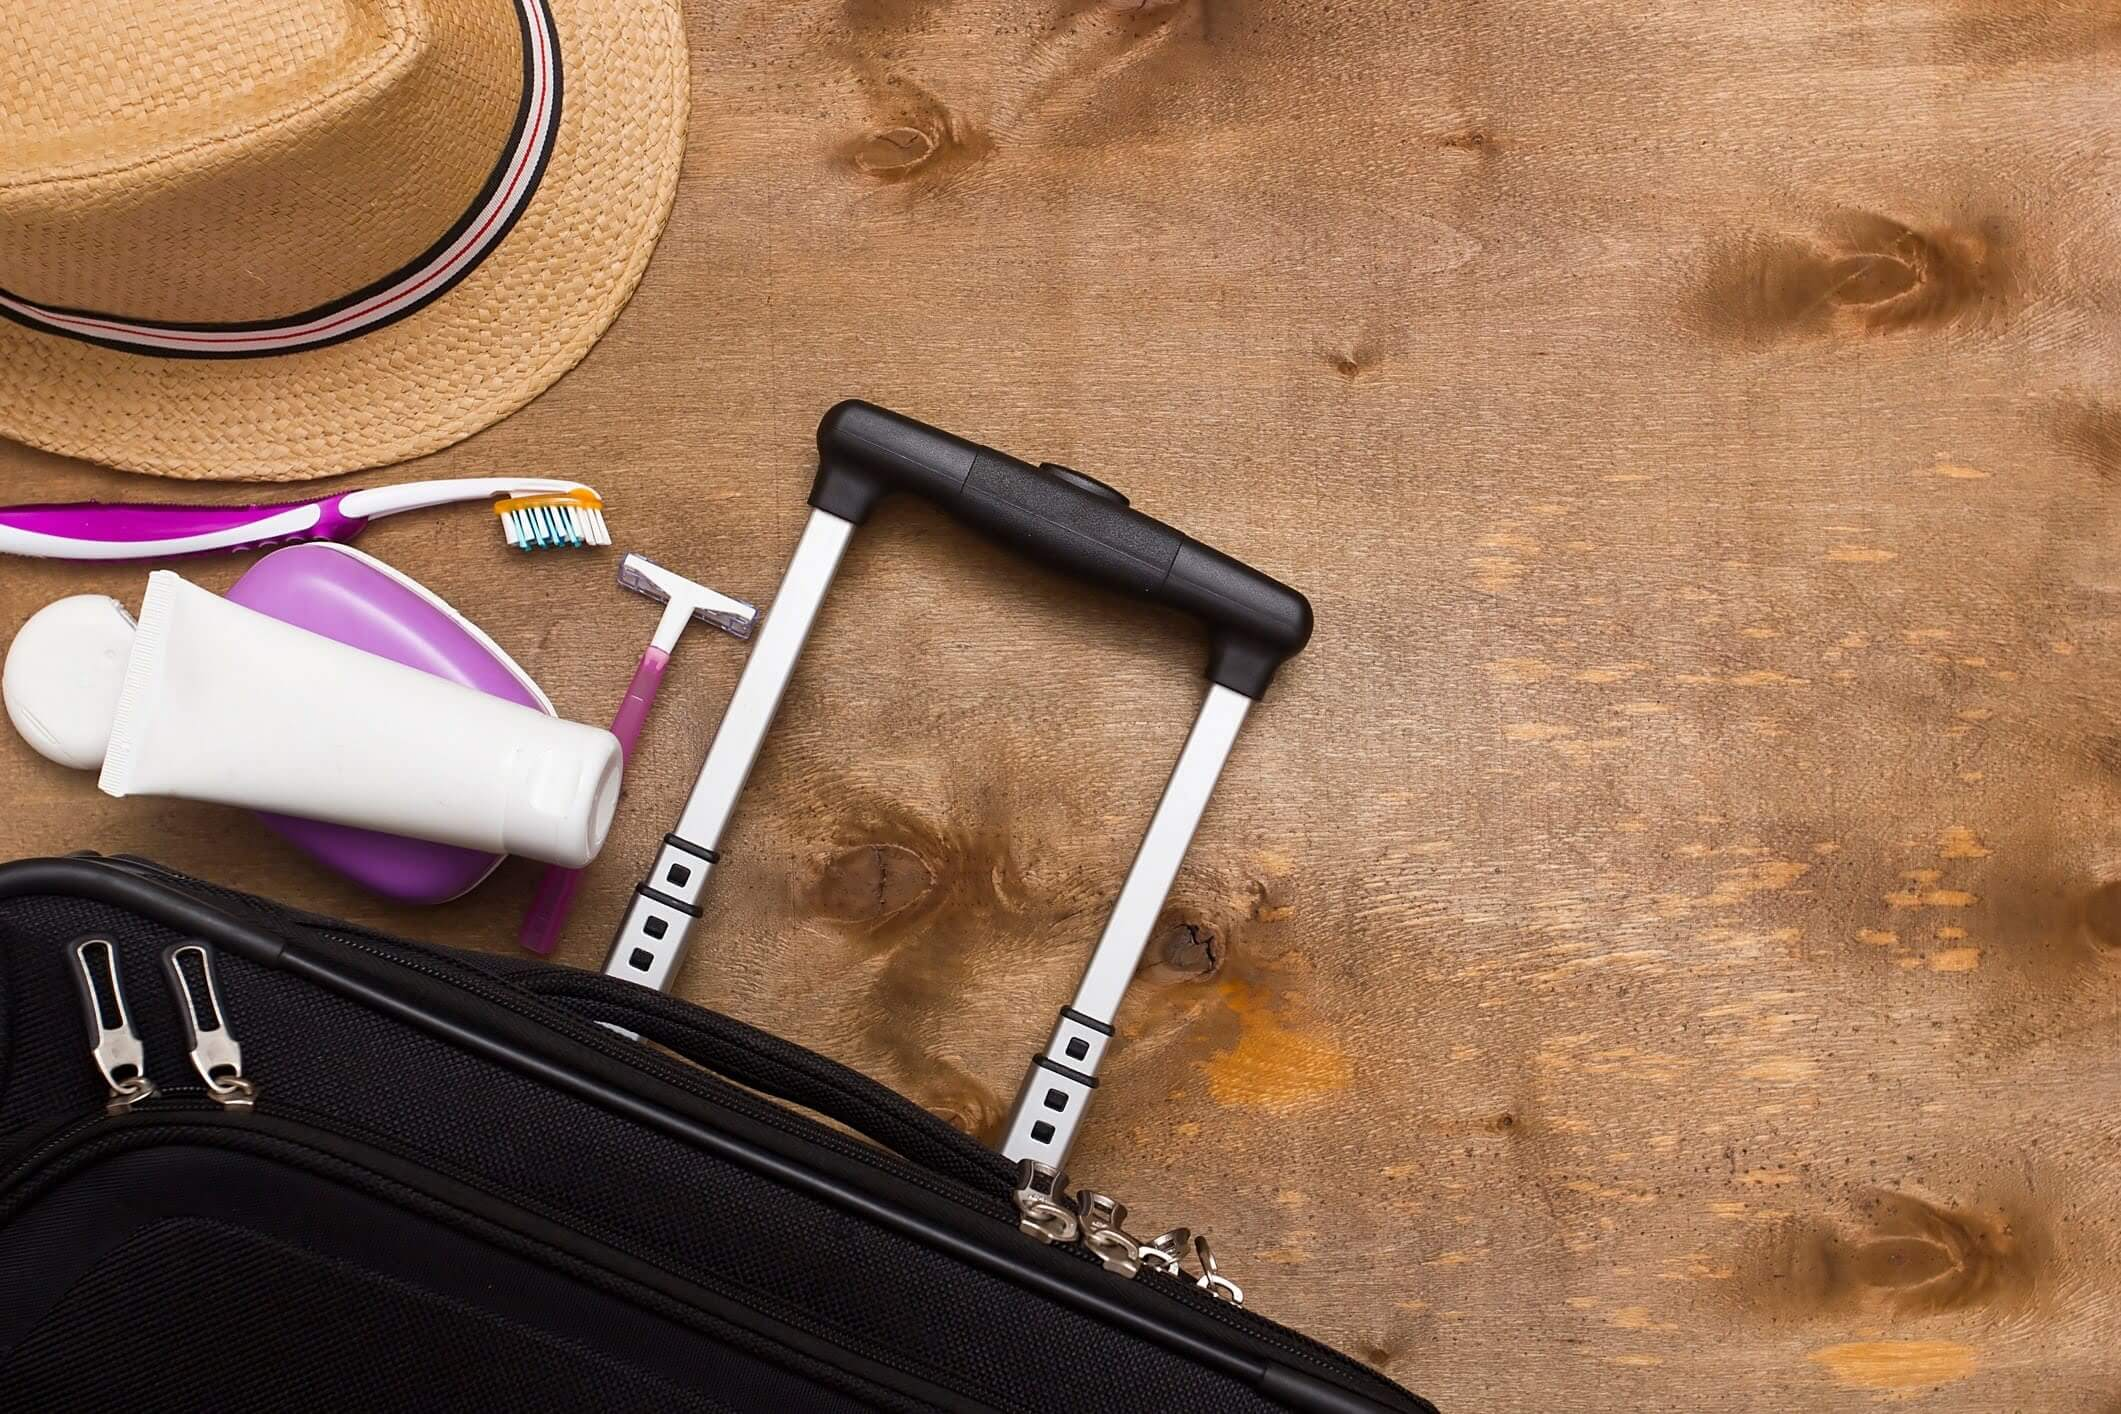 Suitcase with toiletries and hat